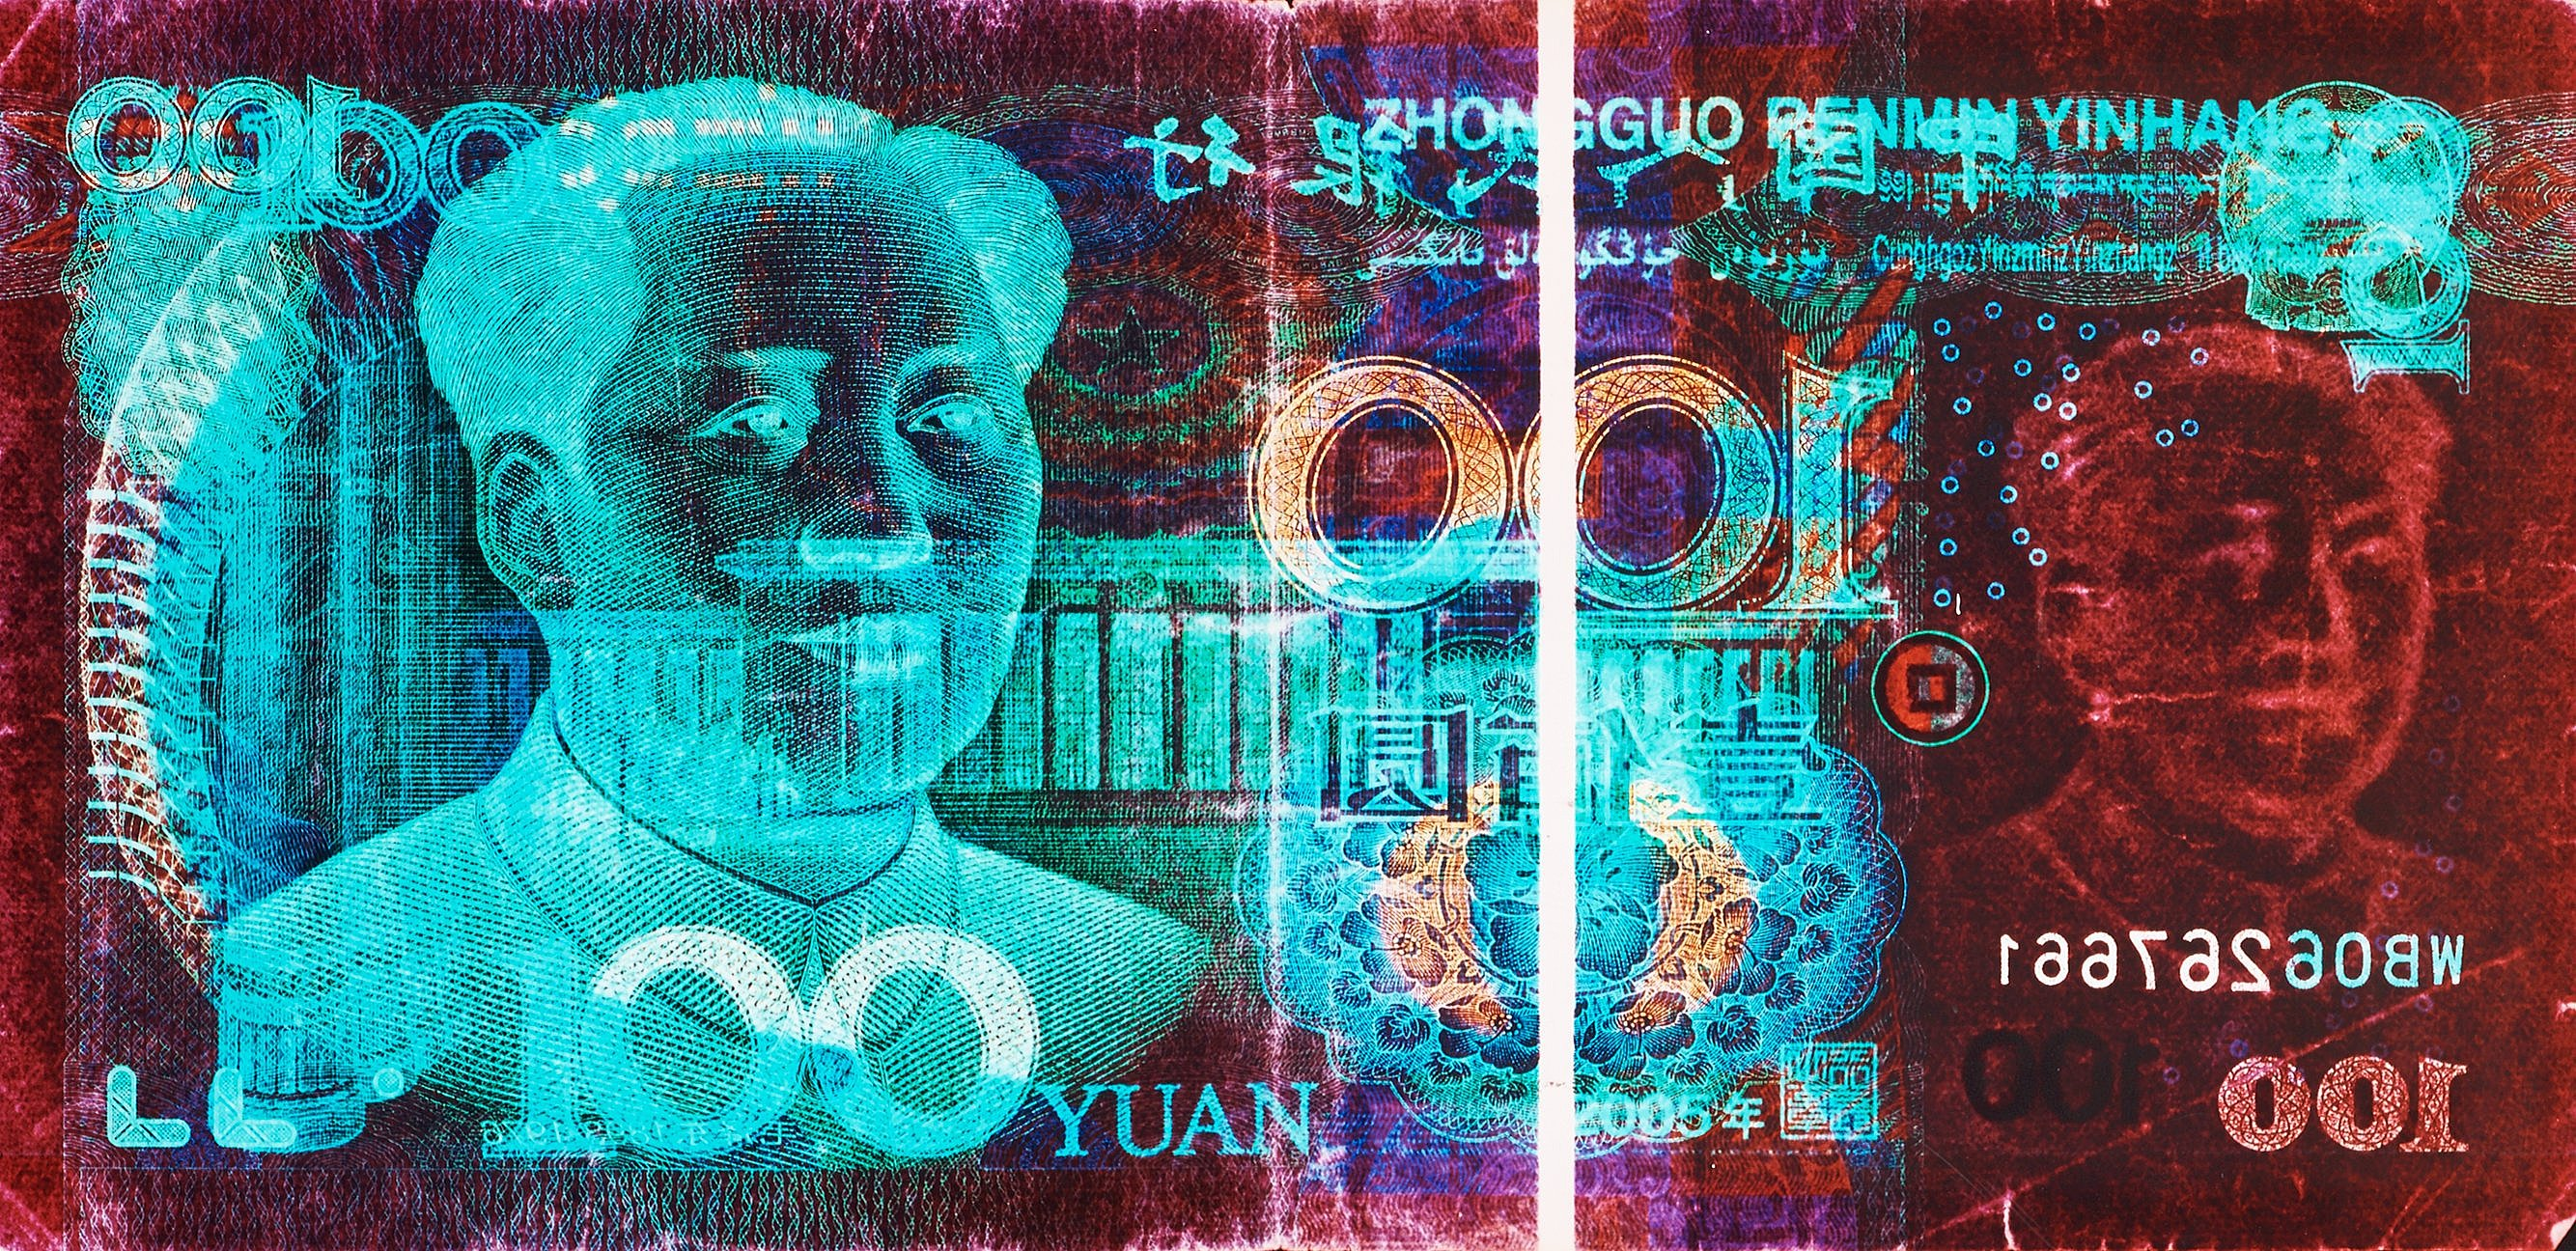 100 Chinese Yuan by David LaChapelle